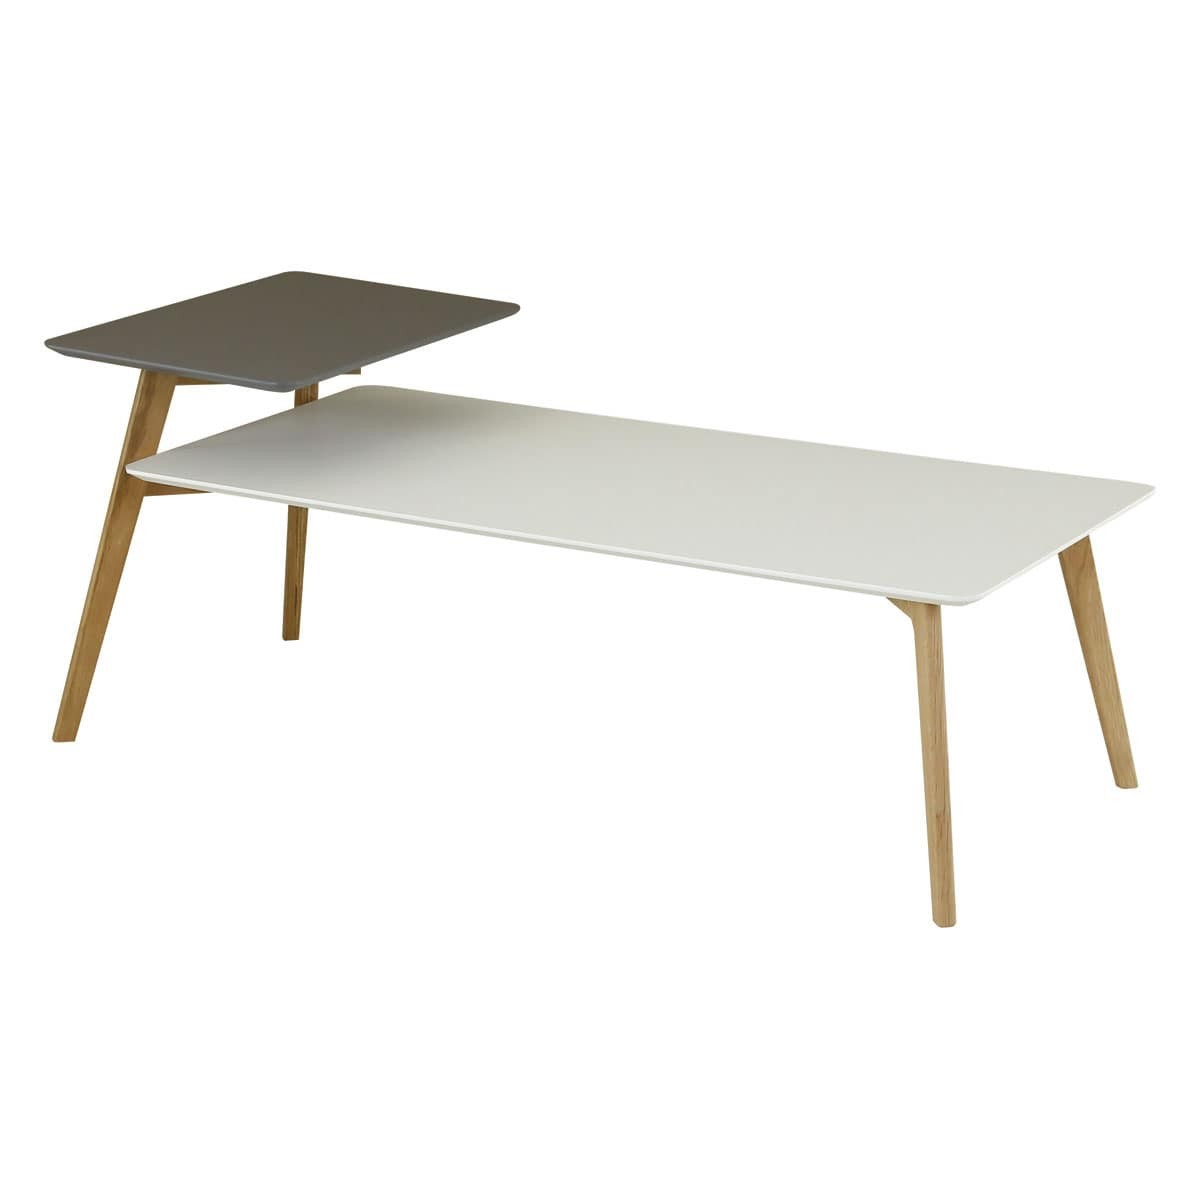 Table basse style scandinave 130 cm double plateaux gris Table basse scandinave gris et blanc